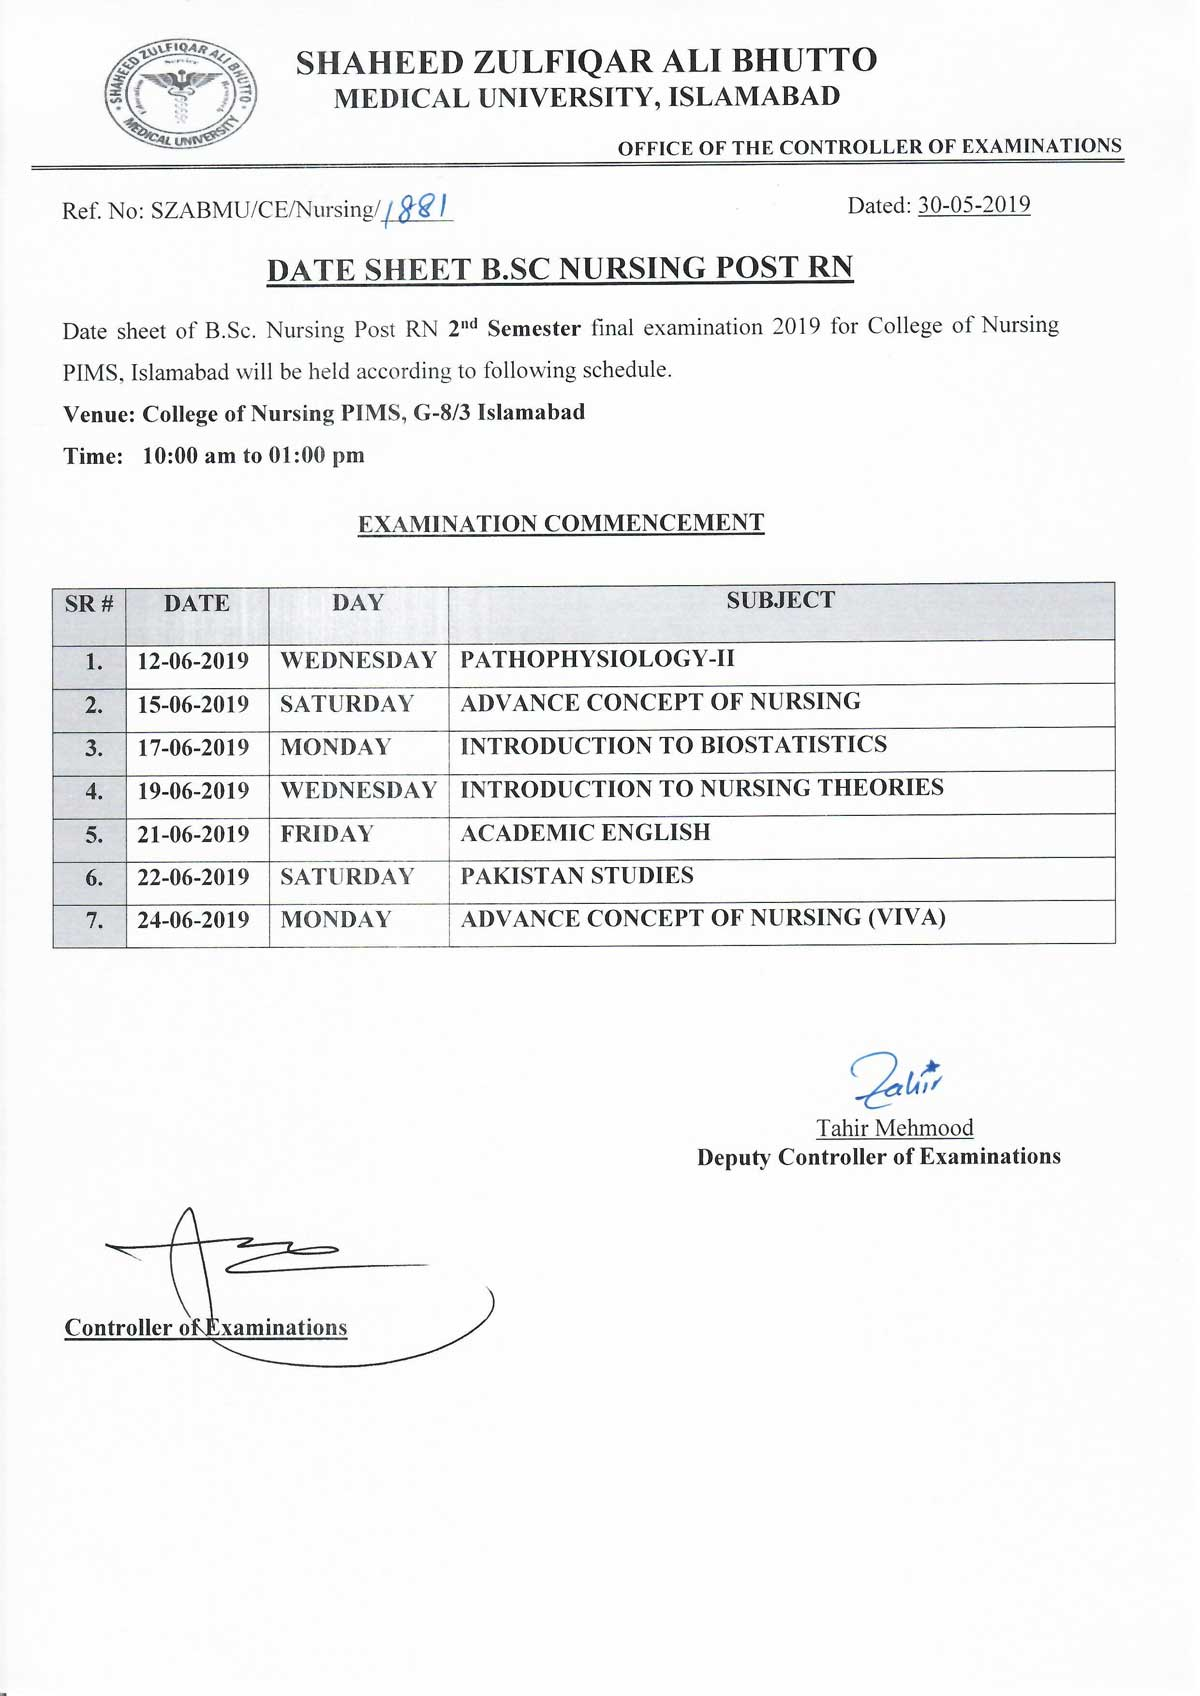 Date sheet of B.Sc Nursing Post RN 2nd Semester final examination 2019 - College of Nursing, PIMS